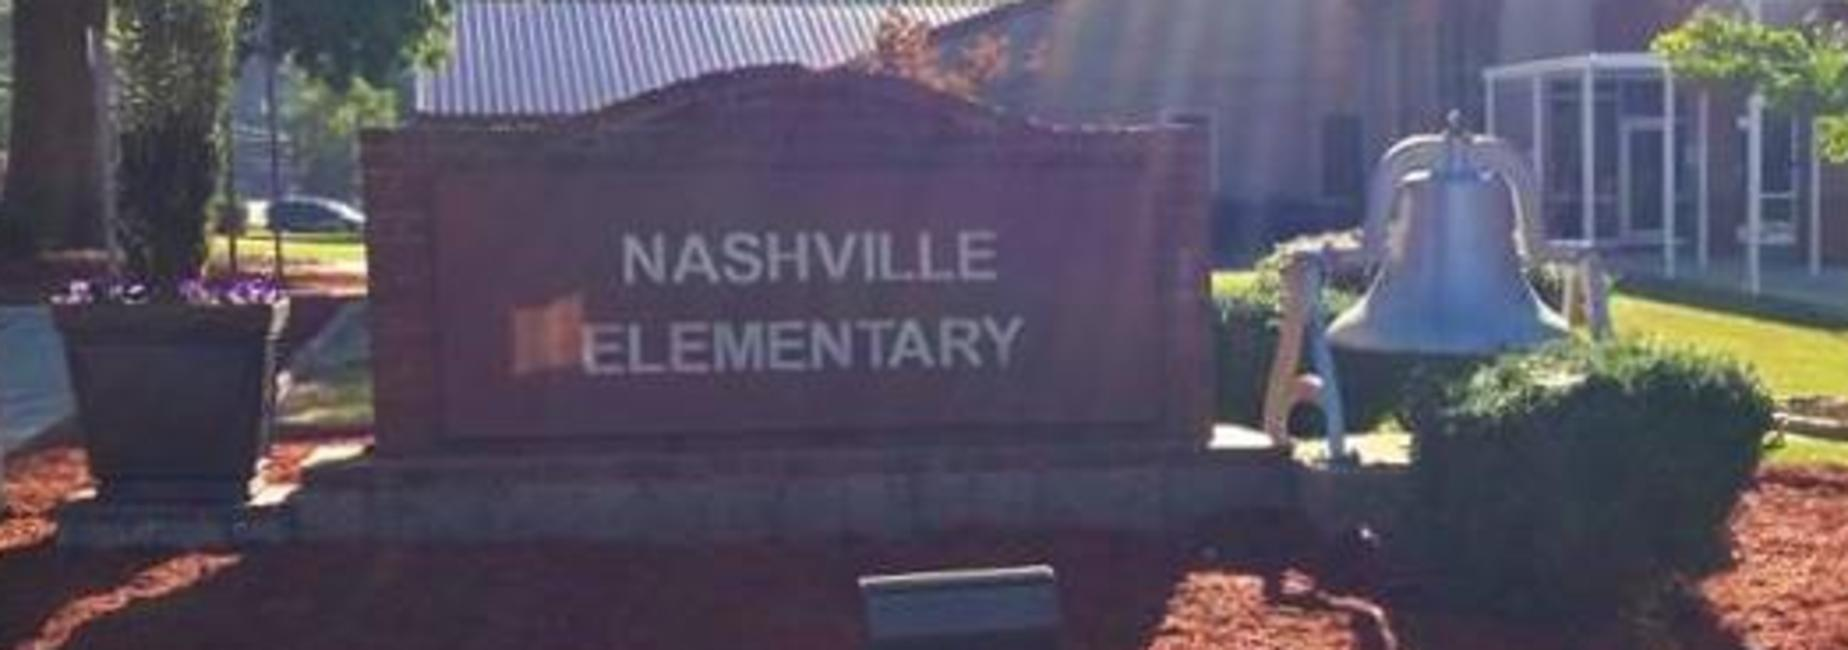 School Sign and Bell